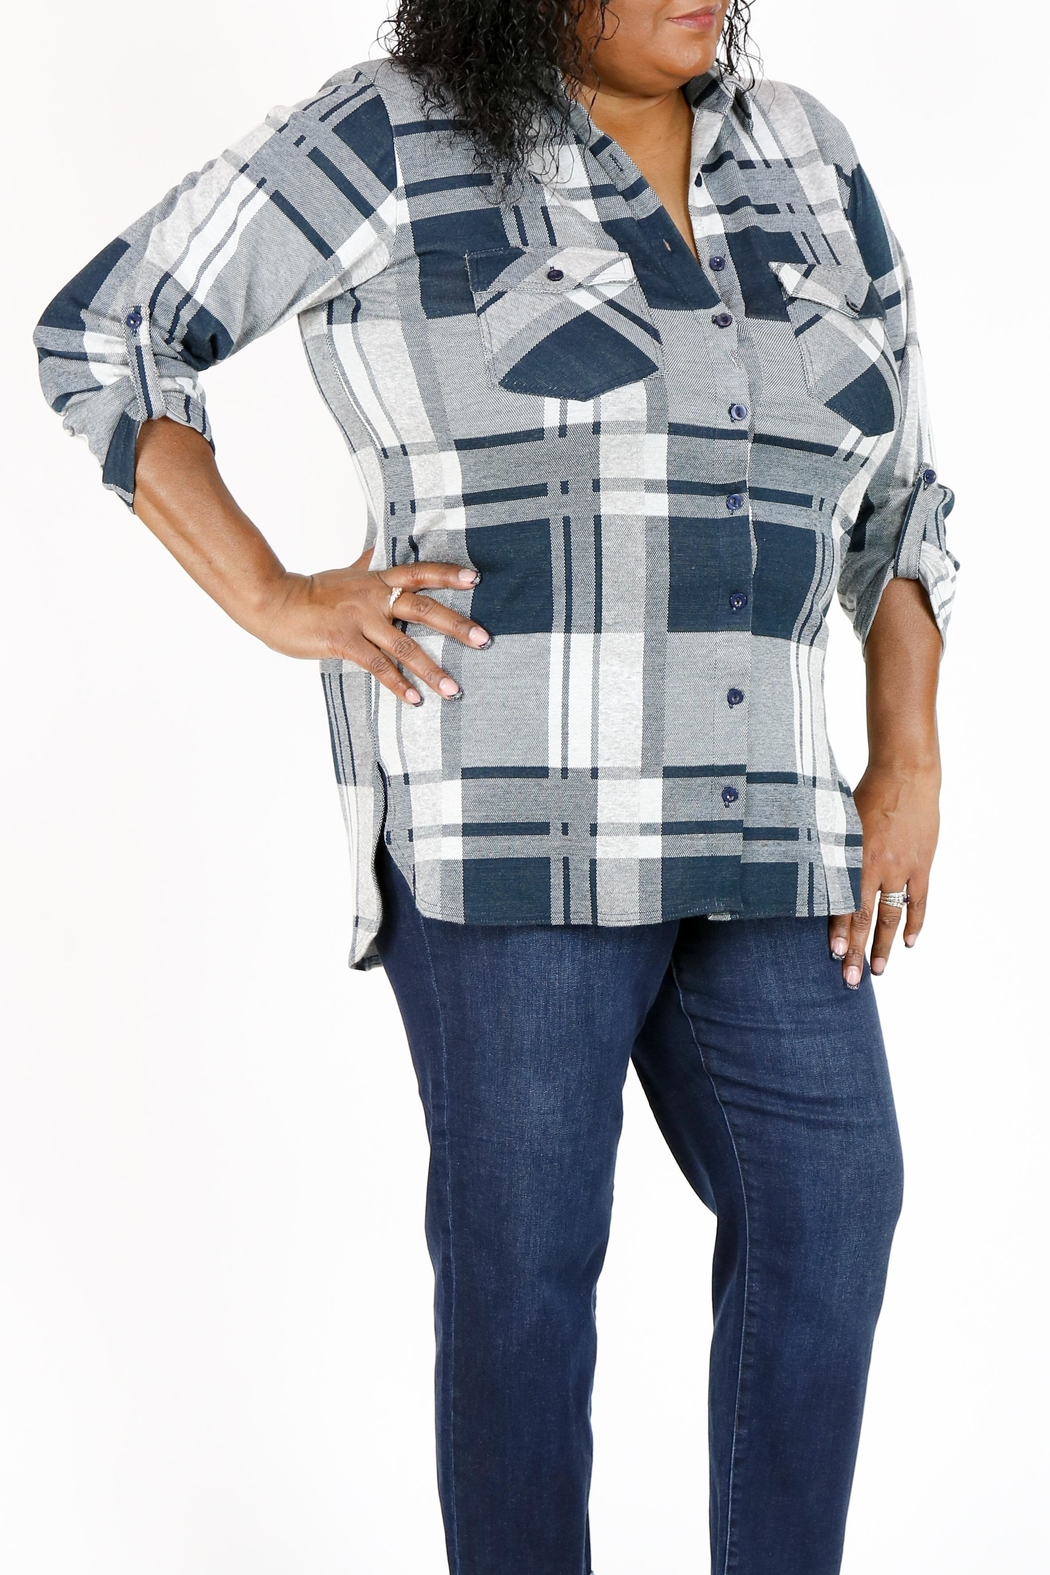 Curvy Fashion USA Plus-Size Plaid Shirt - Main Image